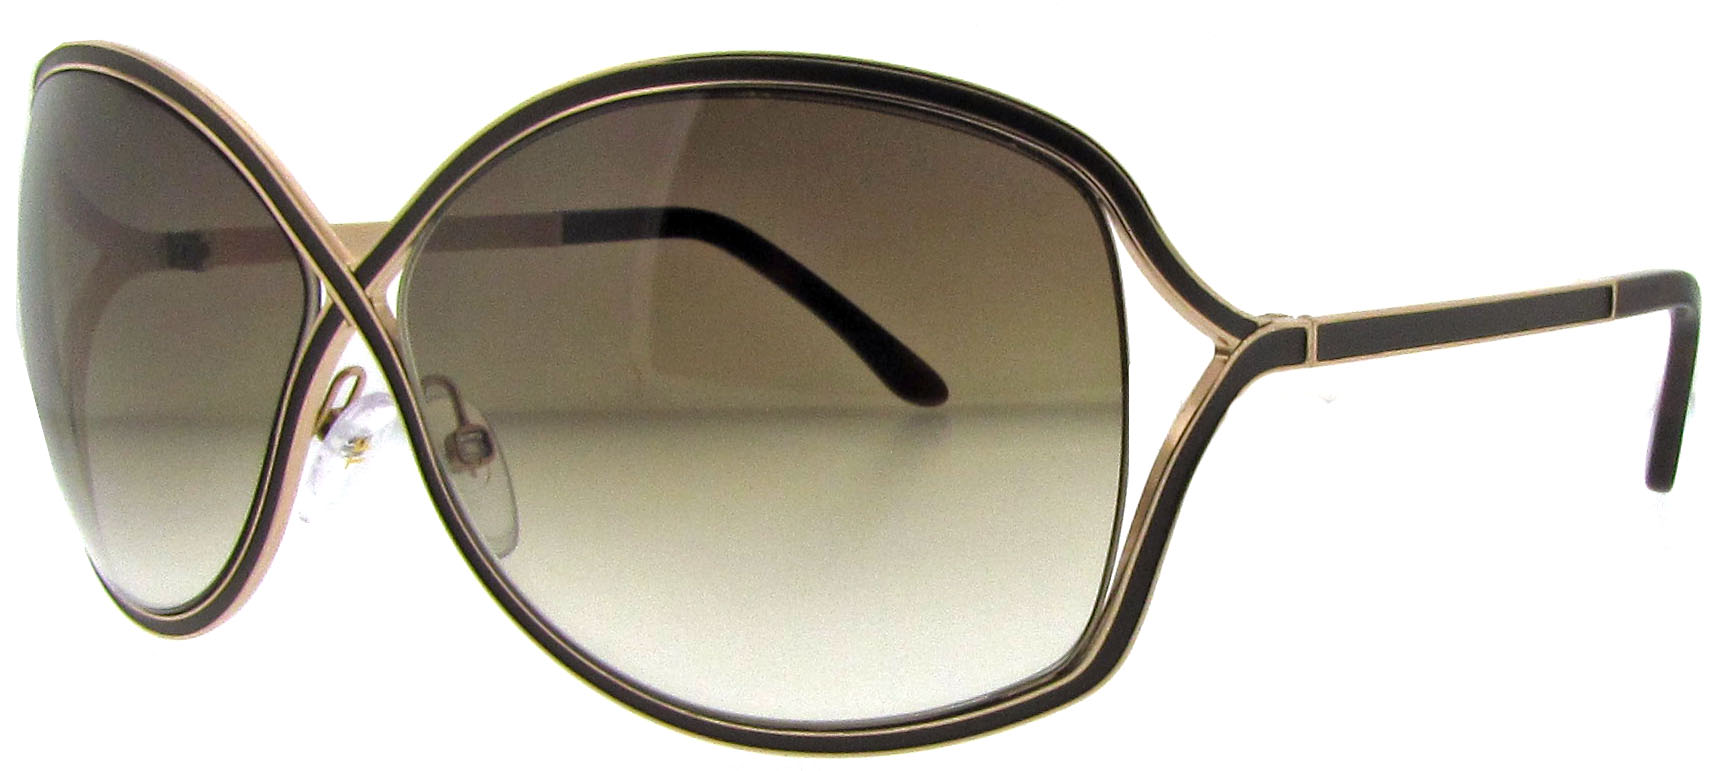 f0a3e4bc99 TOM FORD TF 179 RICKIE 48F BROWN GOLD TF179 SUNGLASSES 664689493890 ...